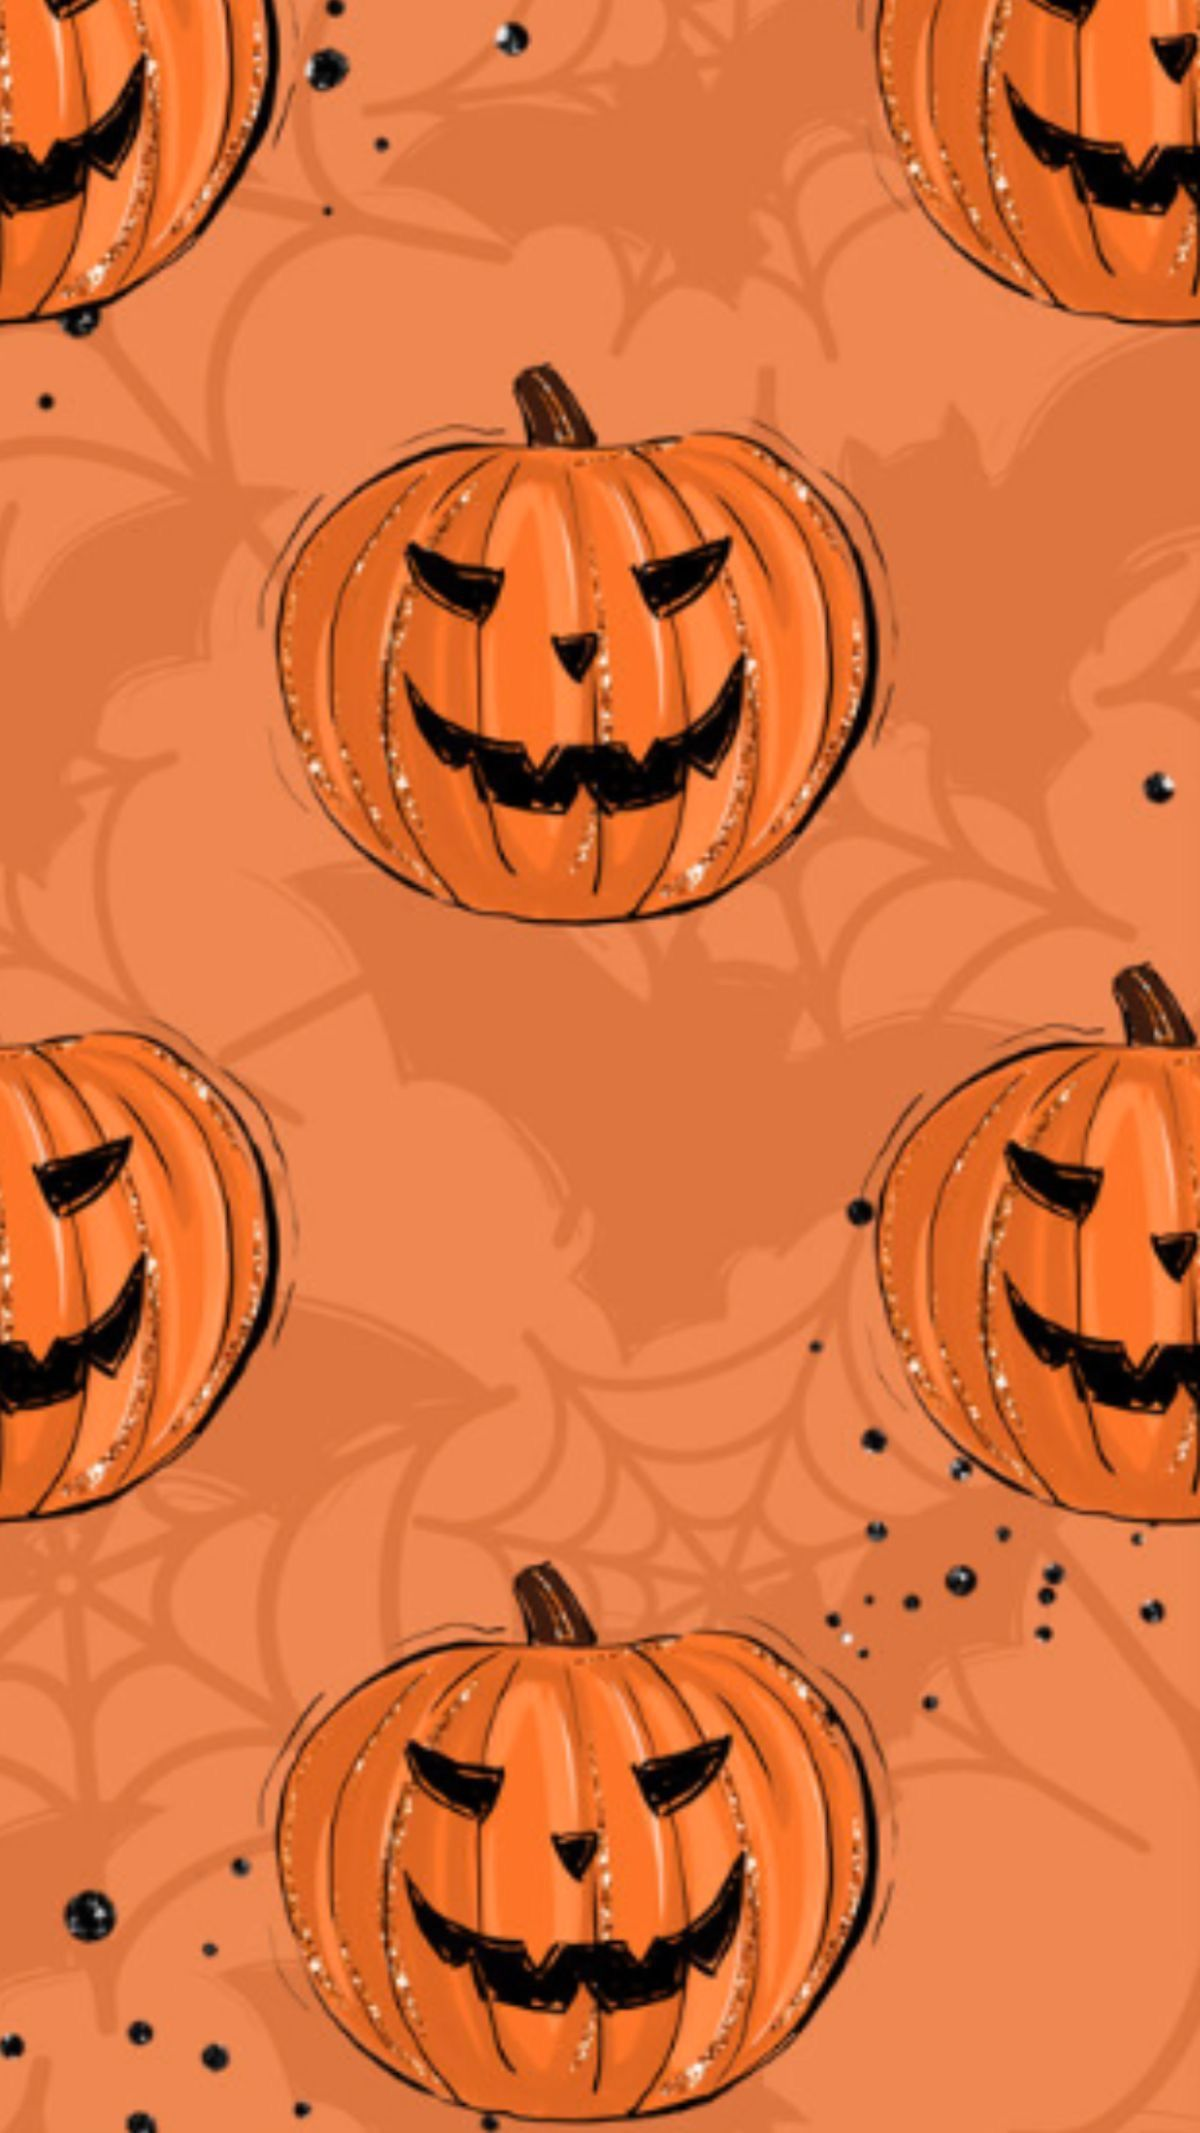 Pin By Adrian Sanchez Plaza On Fall And Halloween Wallpapers In 2020 Halloween Wallpaper Iphone Halloween Wallpaper Cute Fall Wallpaper